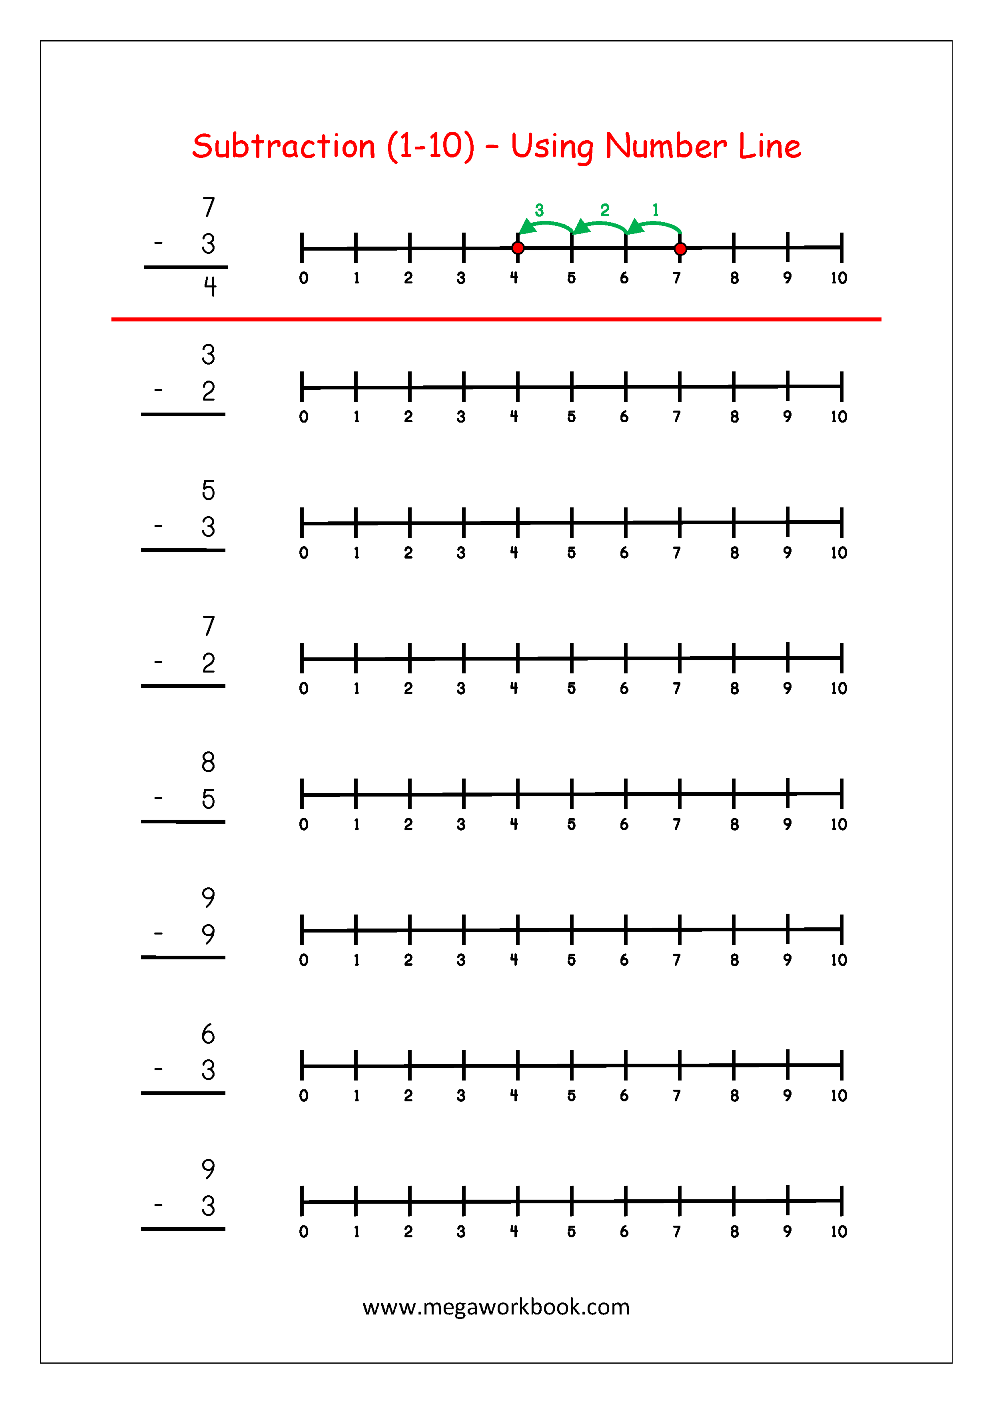 Worksheets Decimal Number Line Worksheet free math worksheets subtraction megaworkbook worksheet using number line 1 10